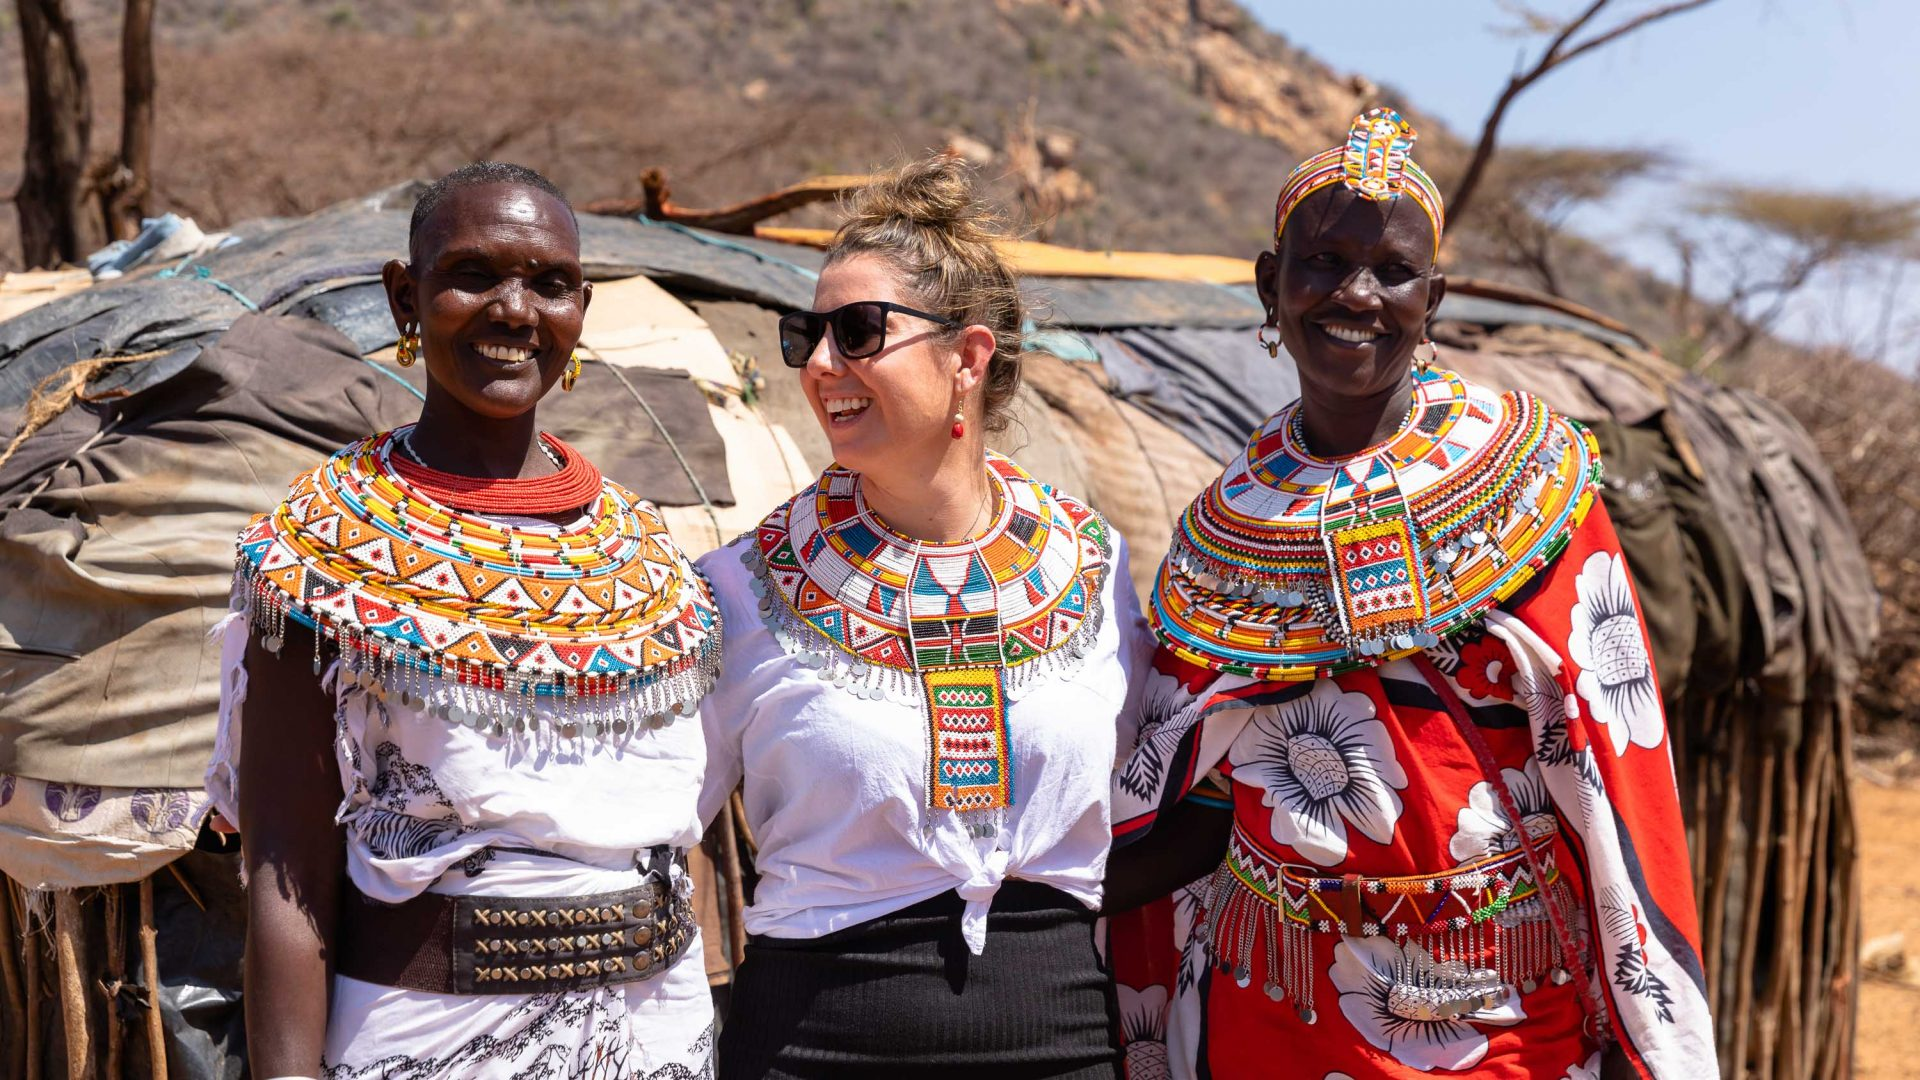 A traveler on Intrepid Travel's women's-only expedition engages with other women in an Umoja village in Samburu National Park.